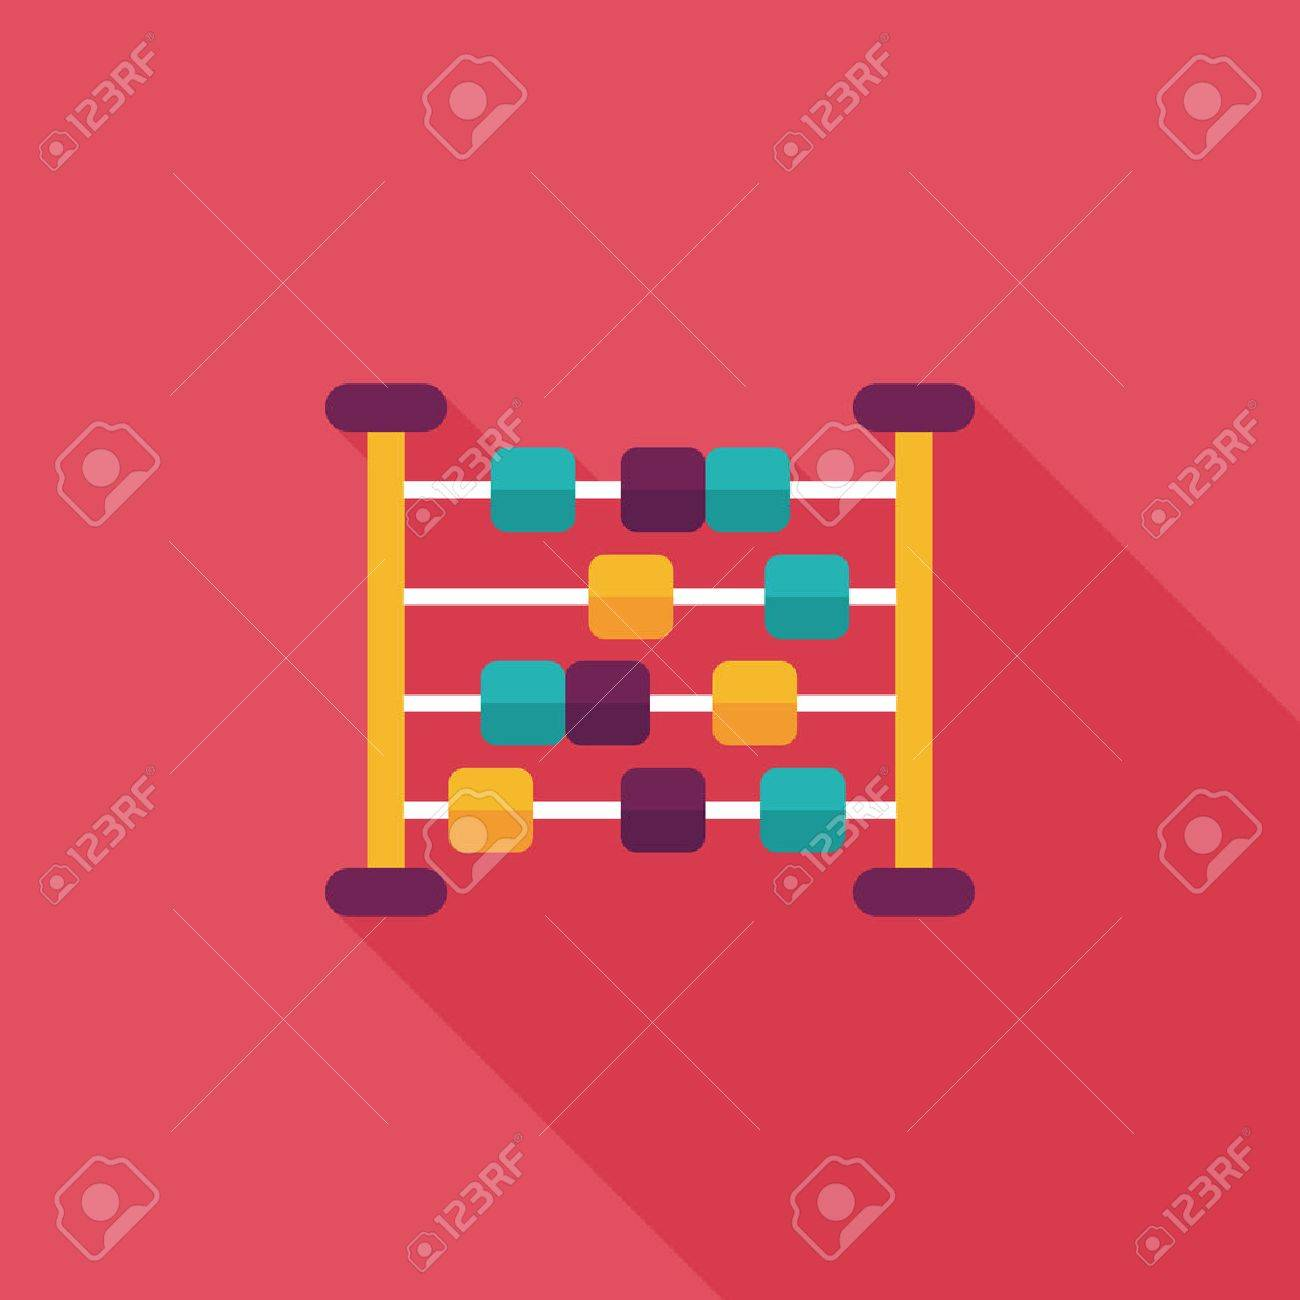 abacus calculation flat icon with long shadow - 31698570